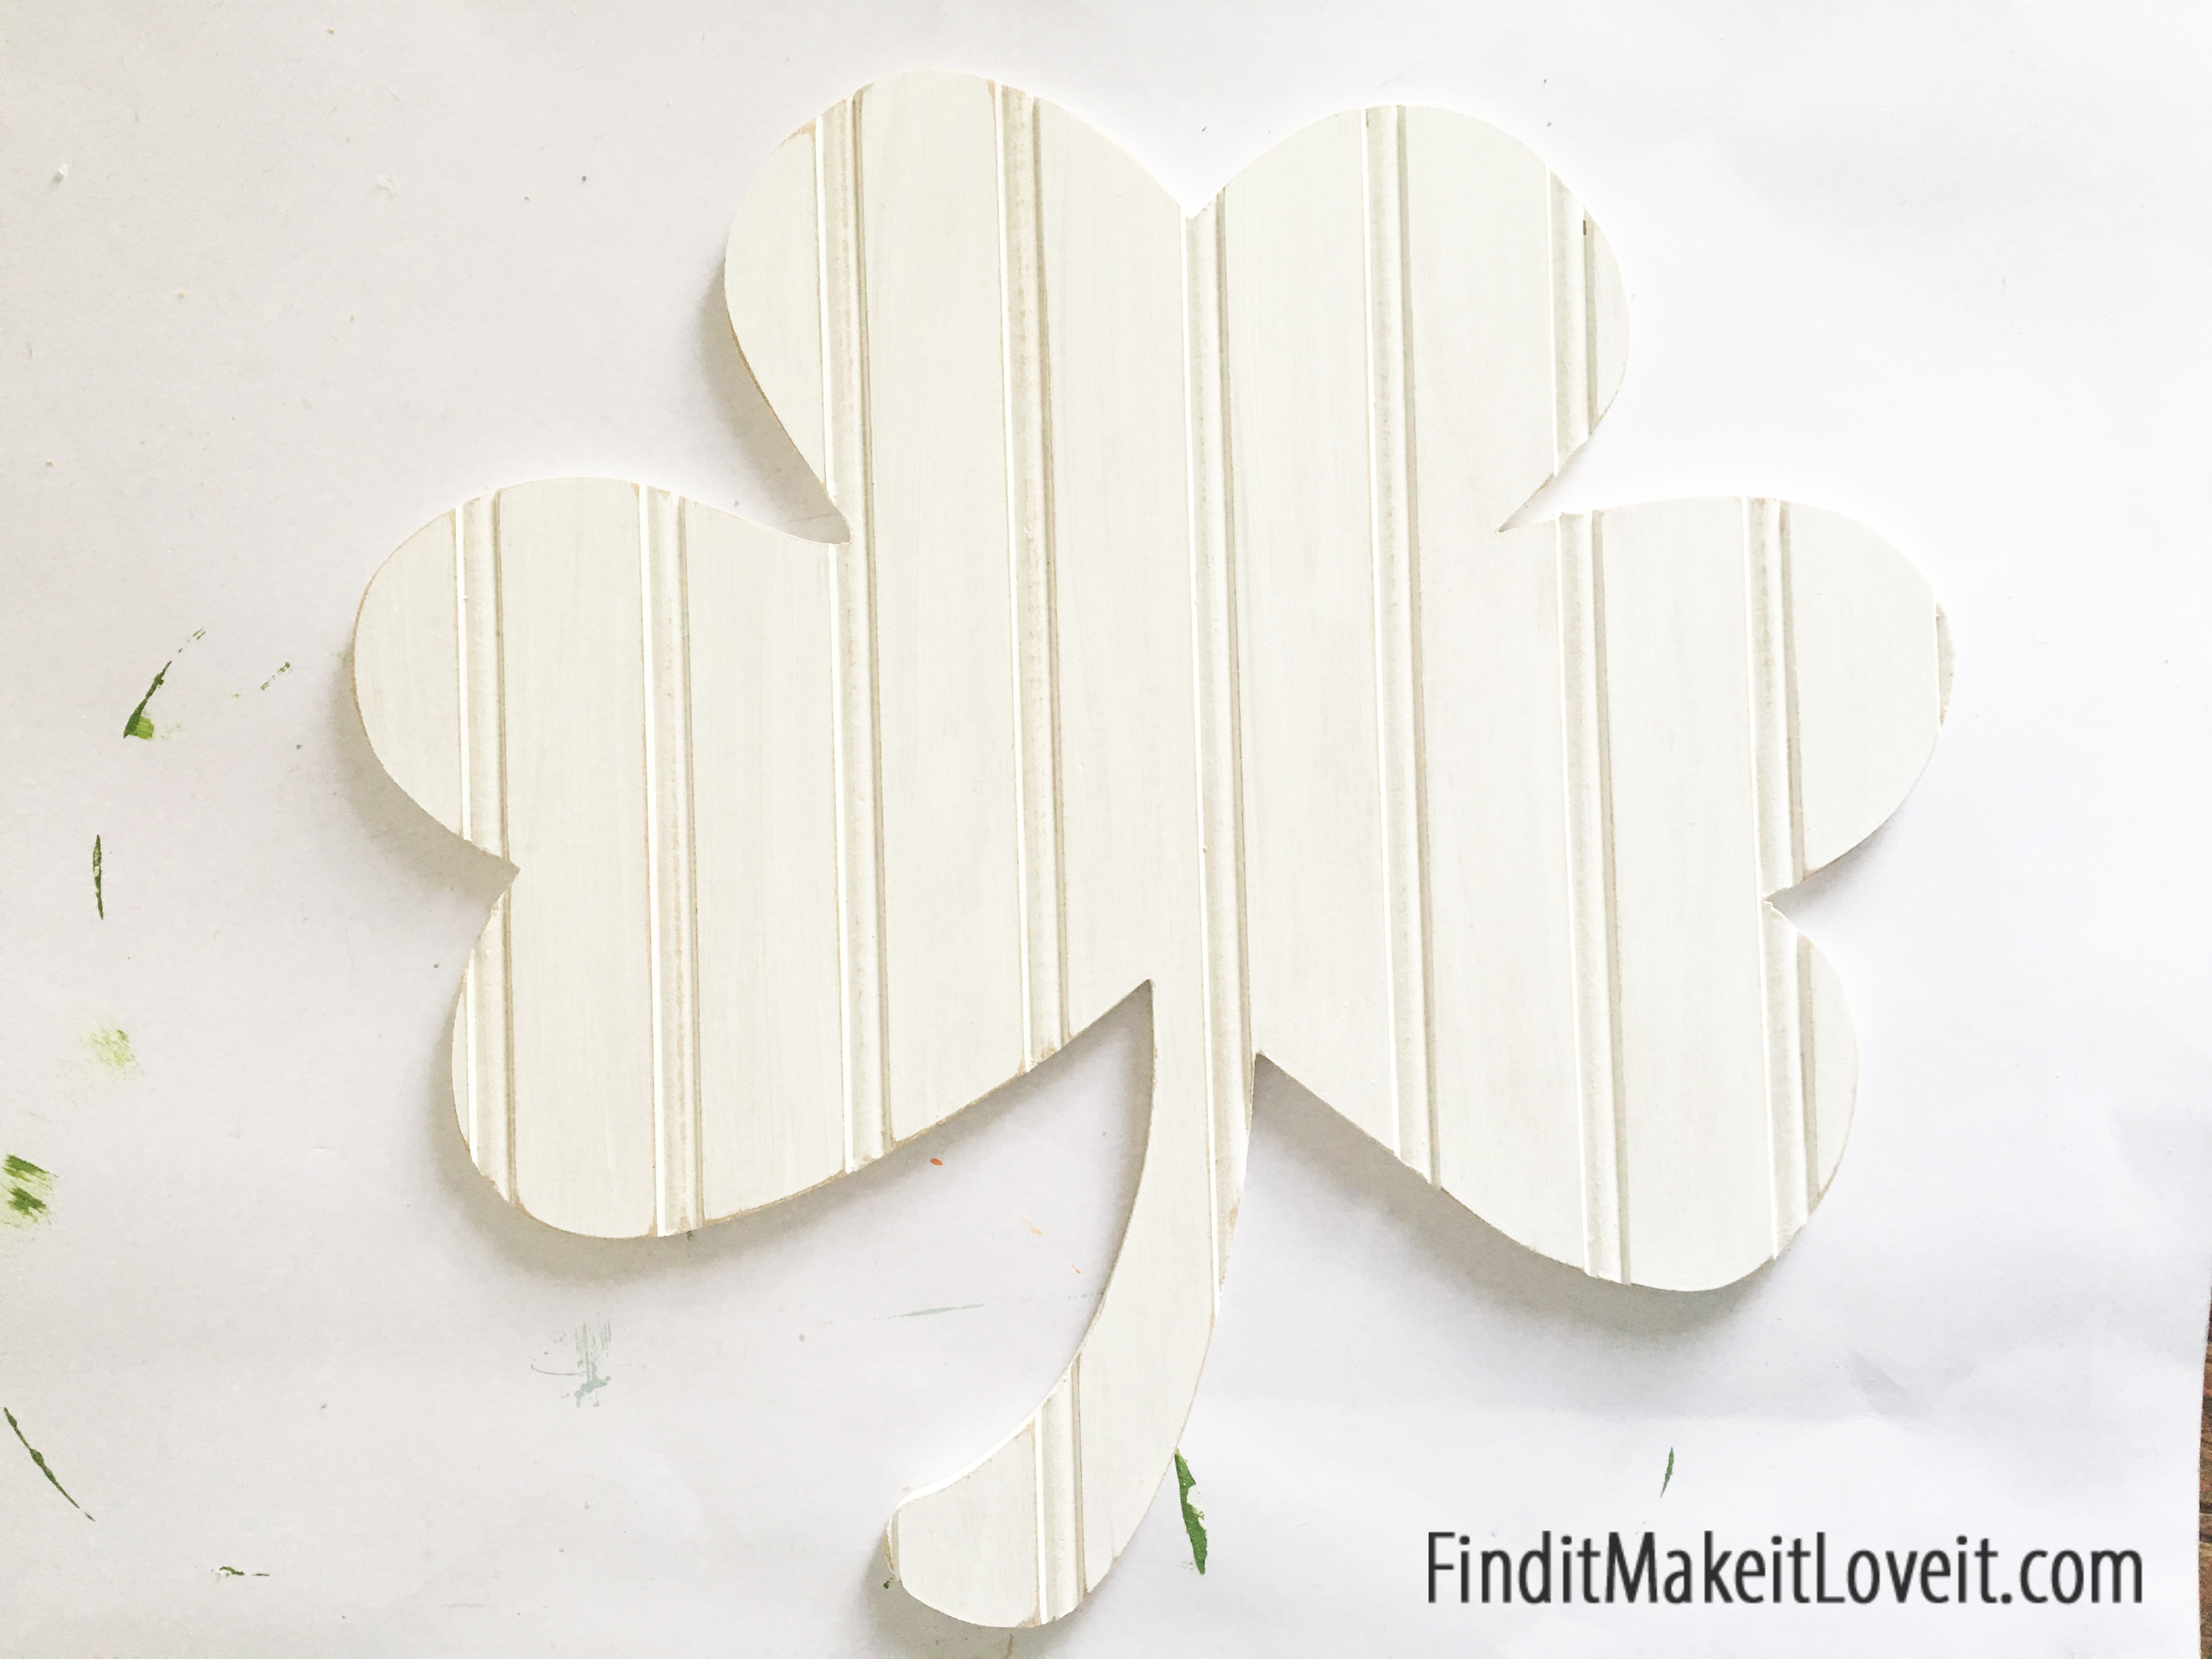 Next paint the sides and front of the bead board overlay white. & Wood Shamrock Door Hang - Find it Make it Love it